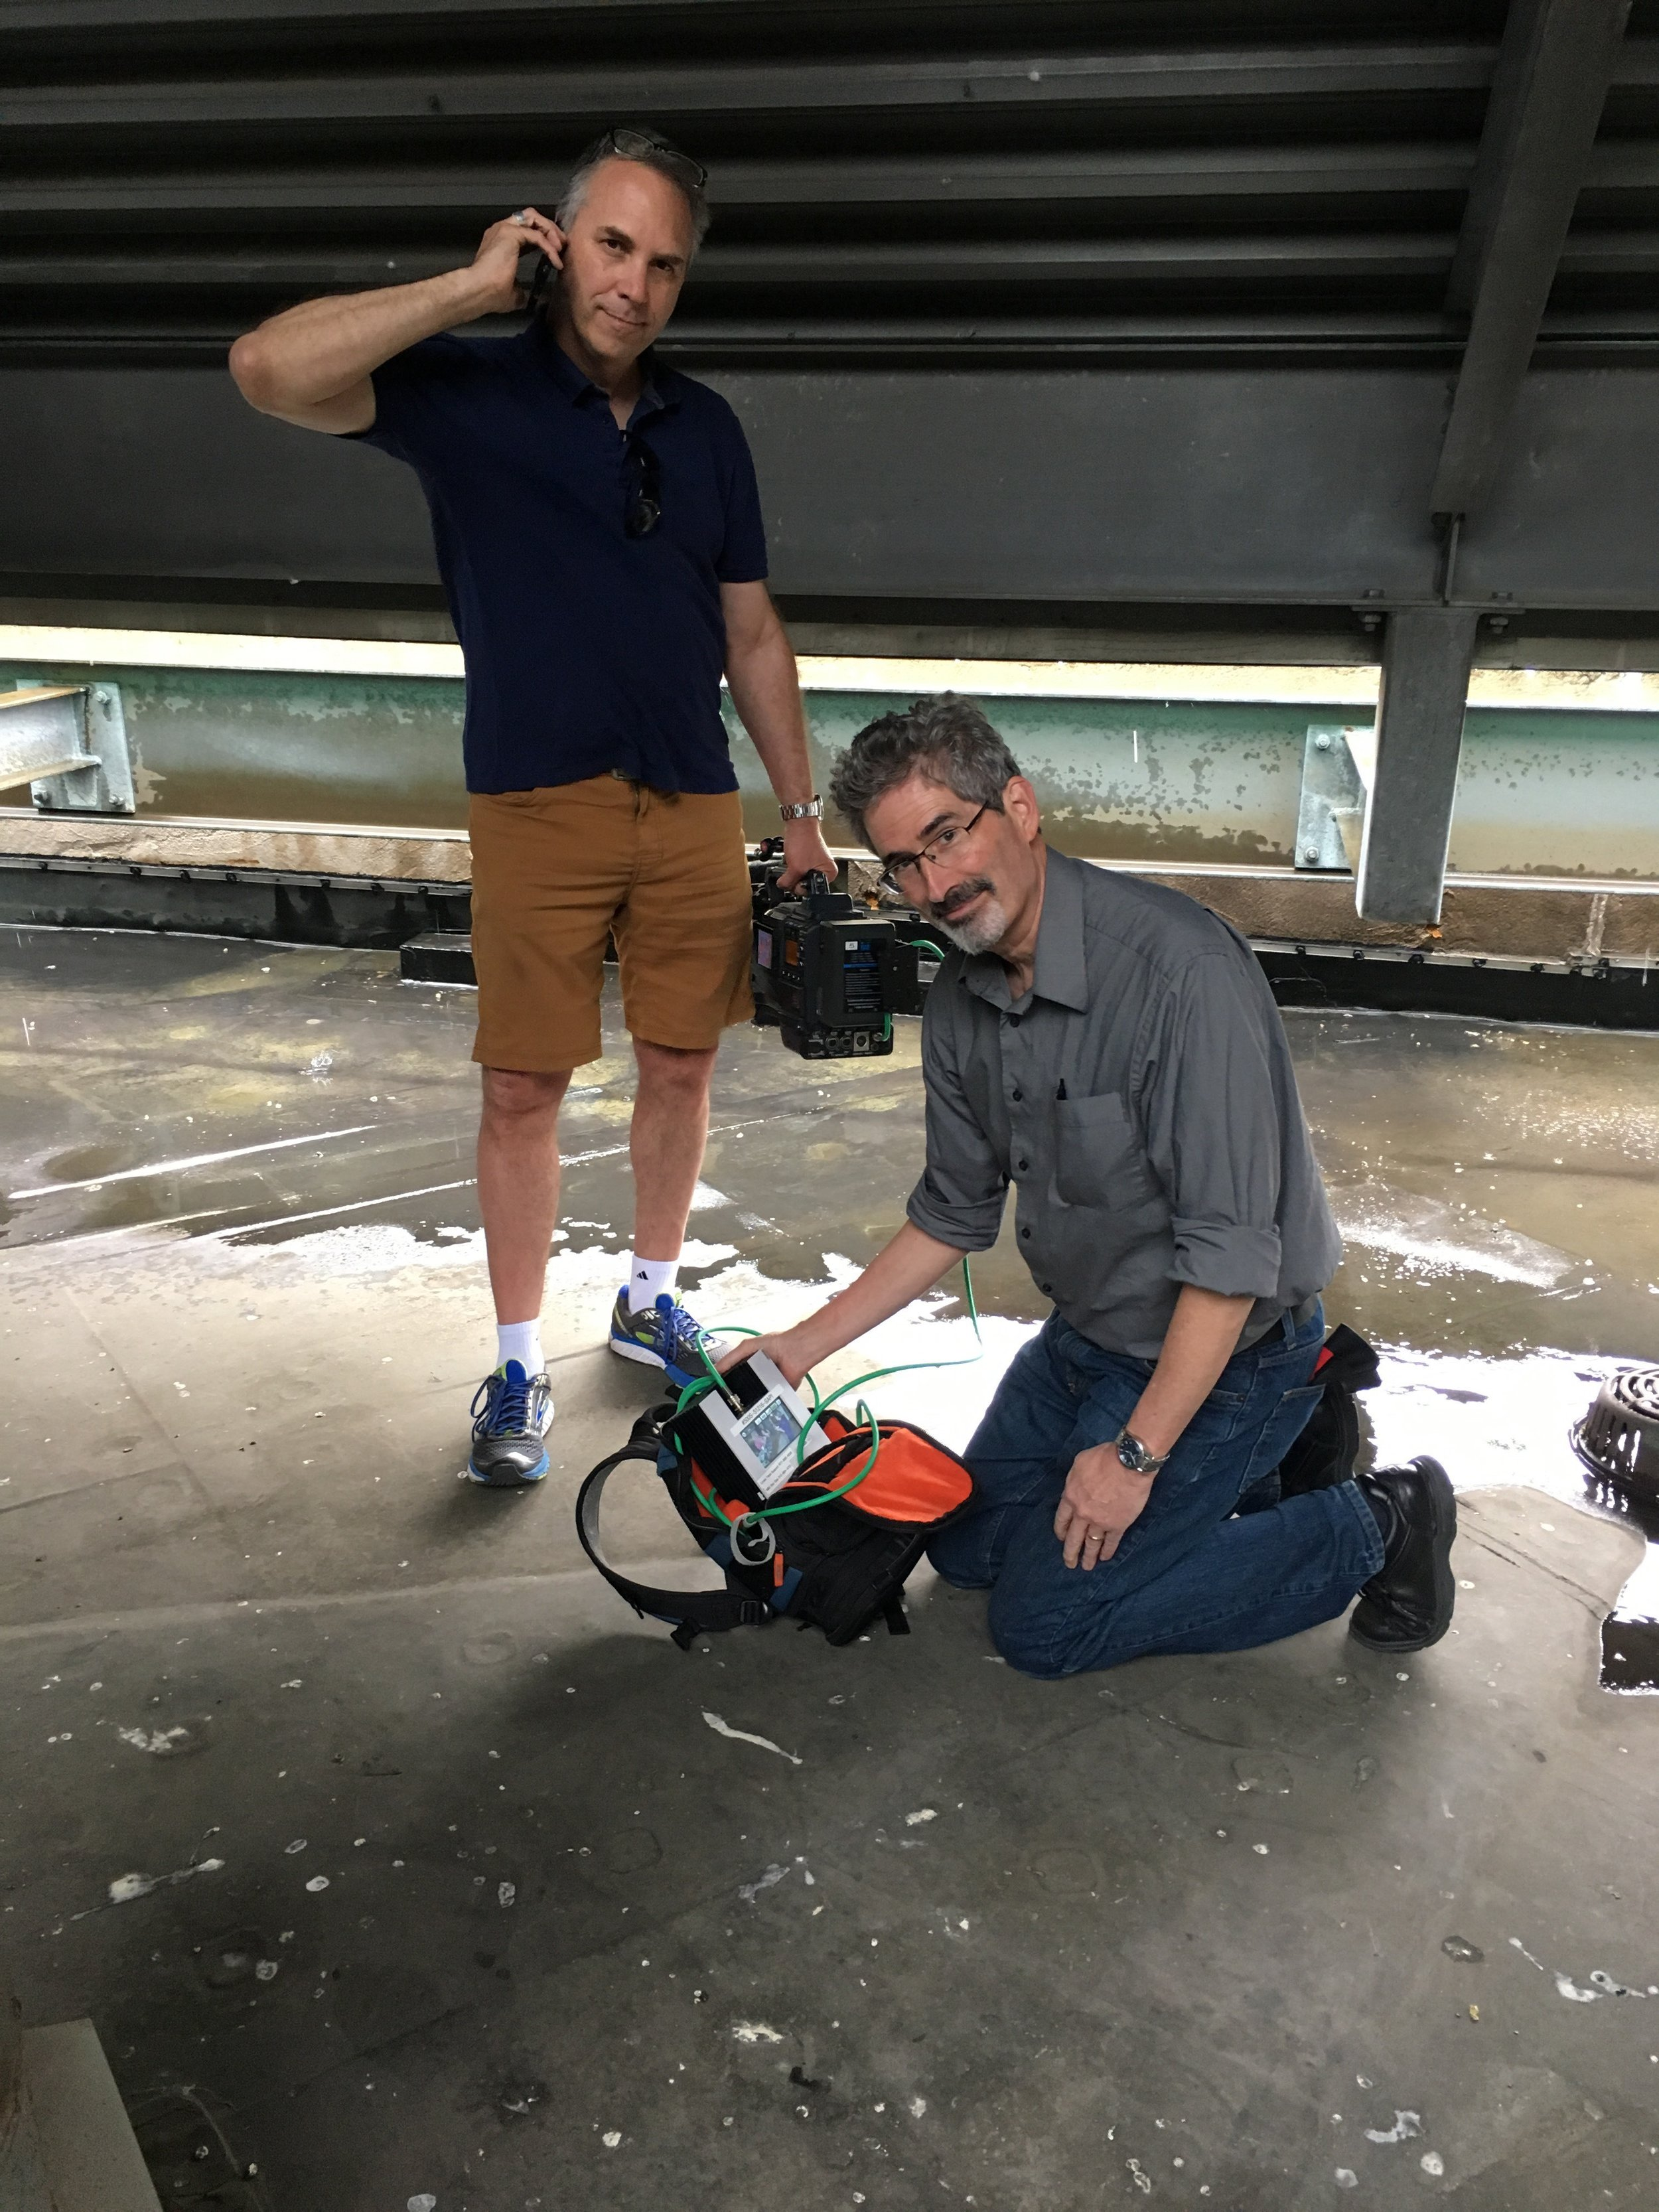 The glamour of TV: On the roof during a rainstorm trying to get a good enough signal to transmit footage via a LiveU for a story on Nightly News...that airs in an hour!